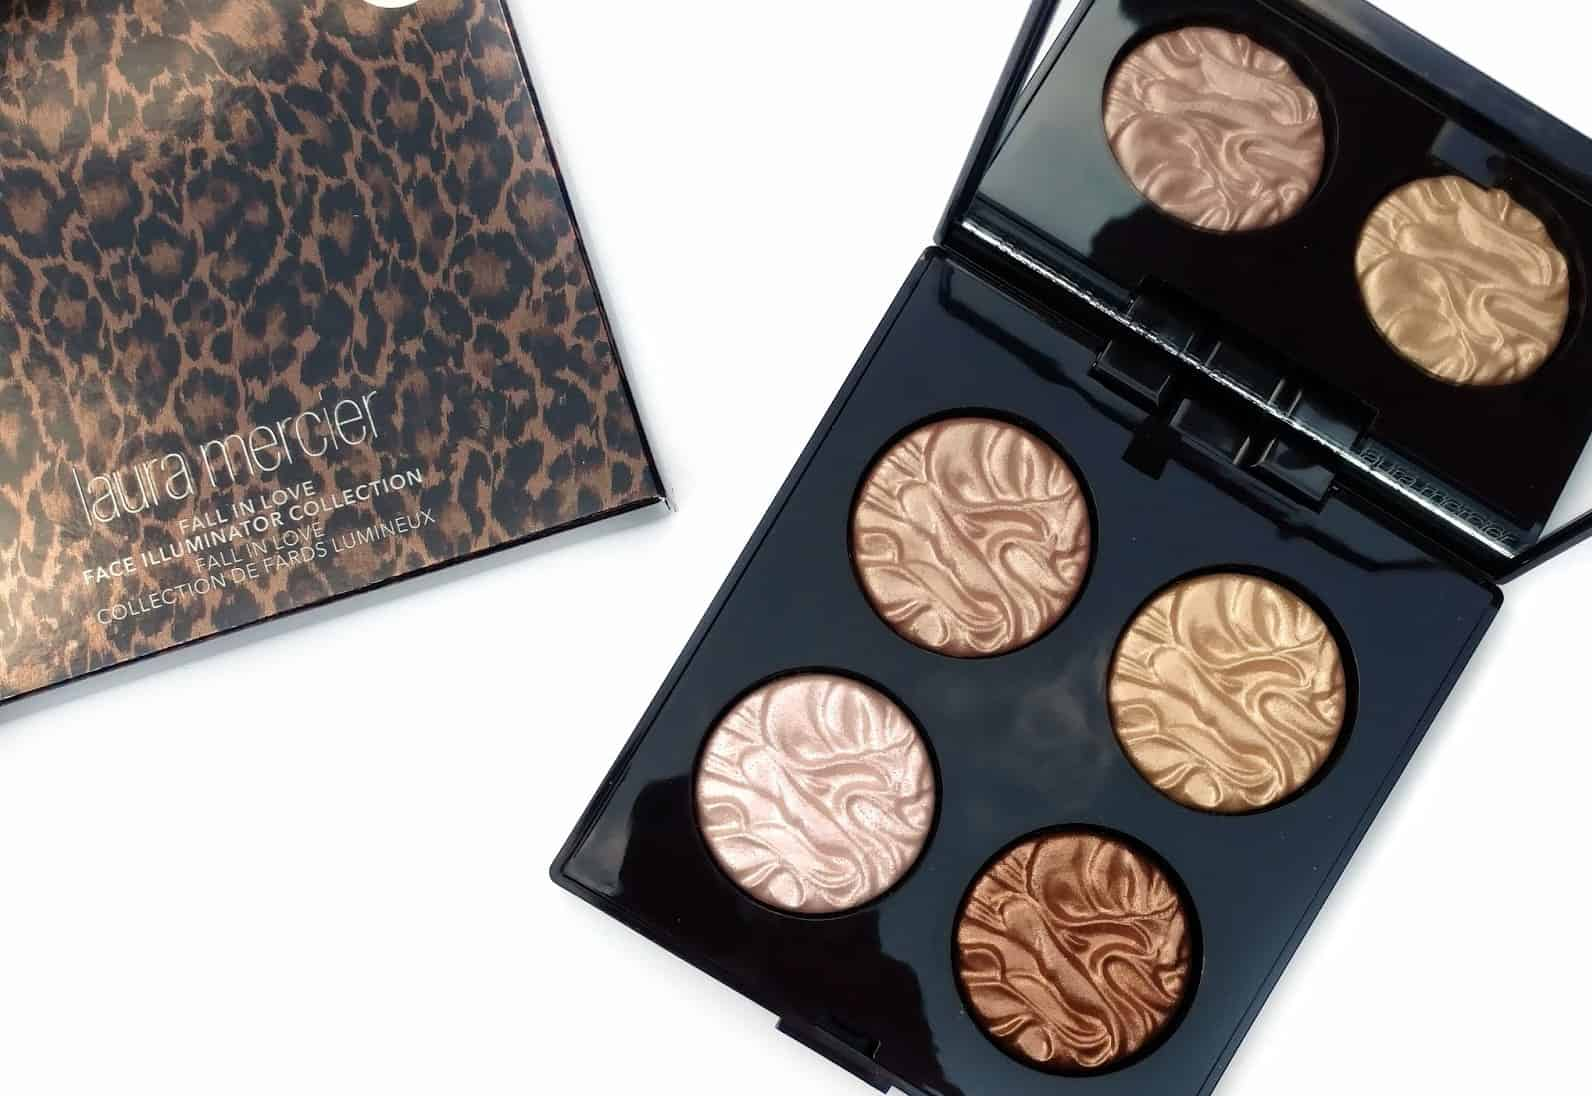 LAURA MERCIER FALL IN LOVE FACE ILLUMINATOR COLLECTION REVIEW